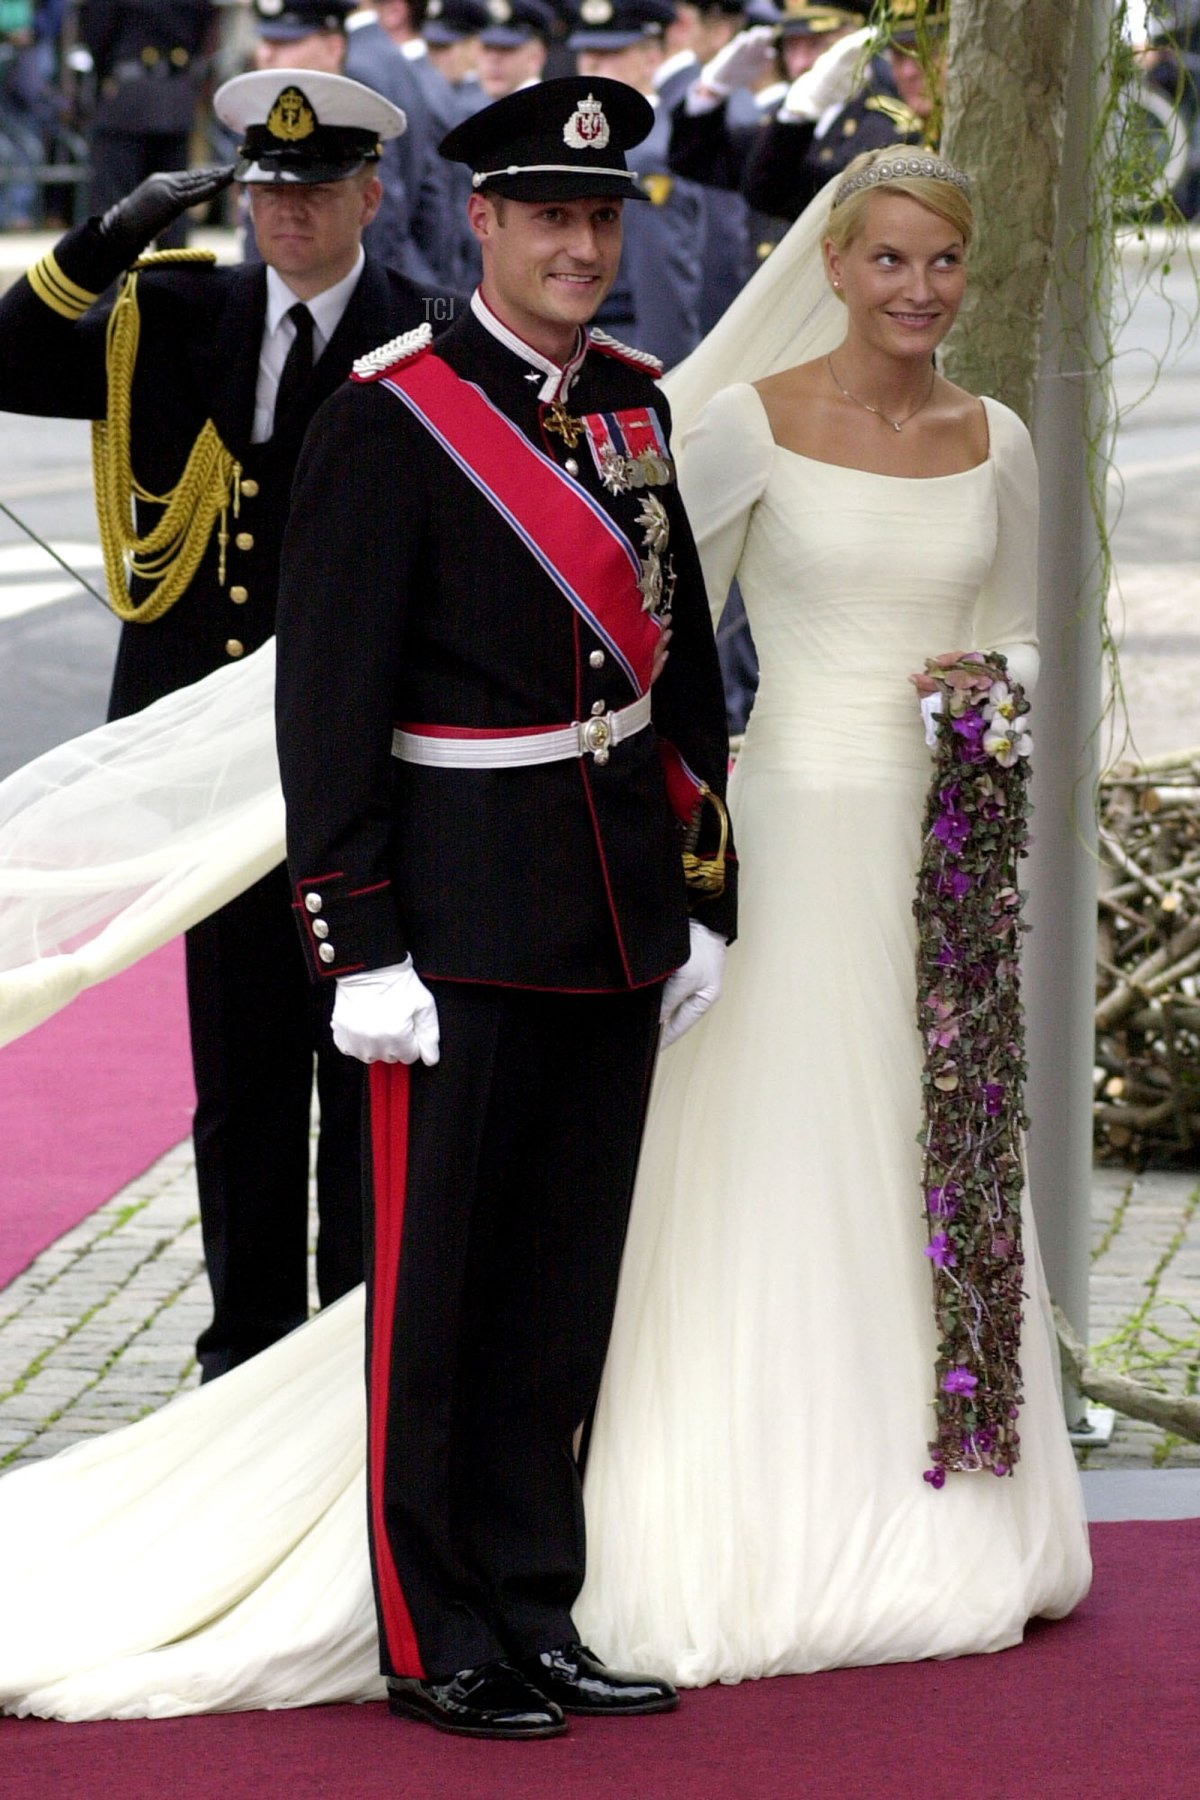 Norwegian Crown Prince Haakon and Mette-Marit Tjessem Hoiby arrive for their wedding August 25, 2001 at the Oslo Cathedral